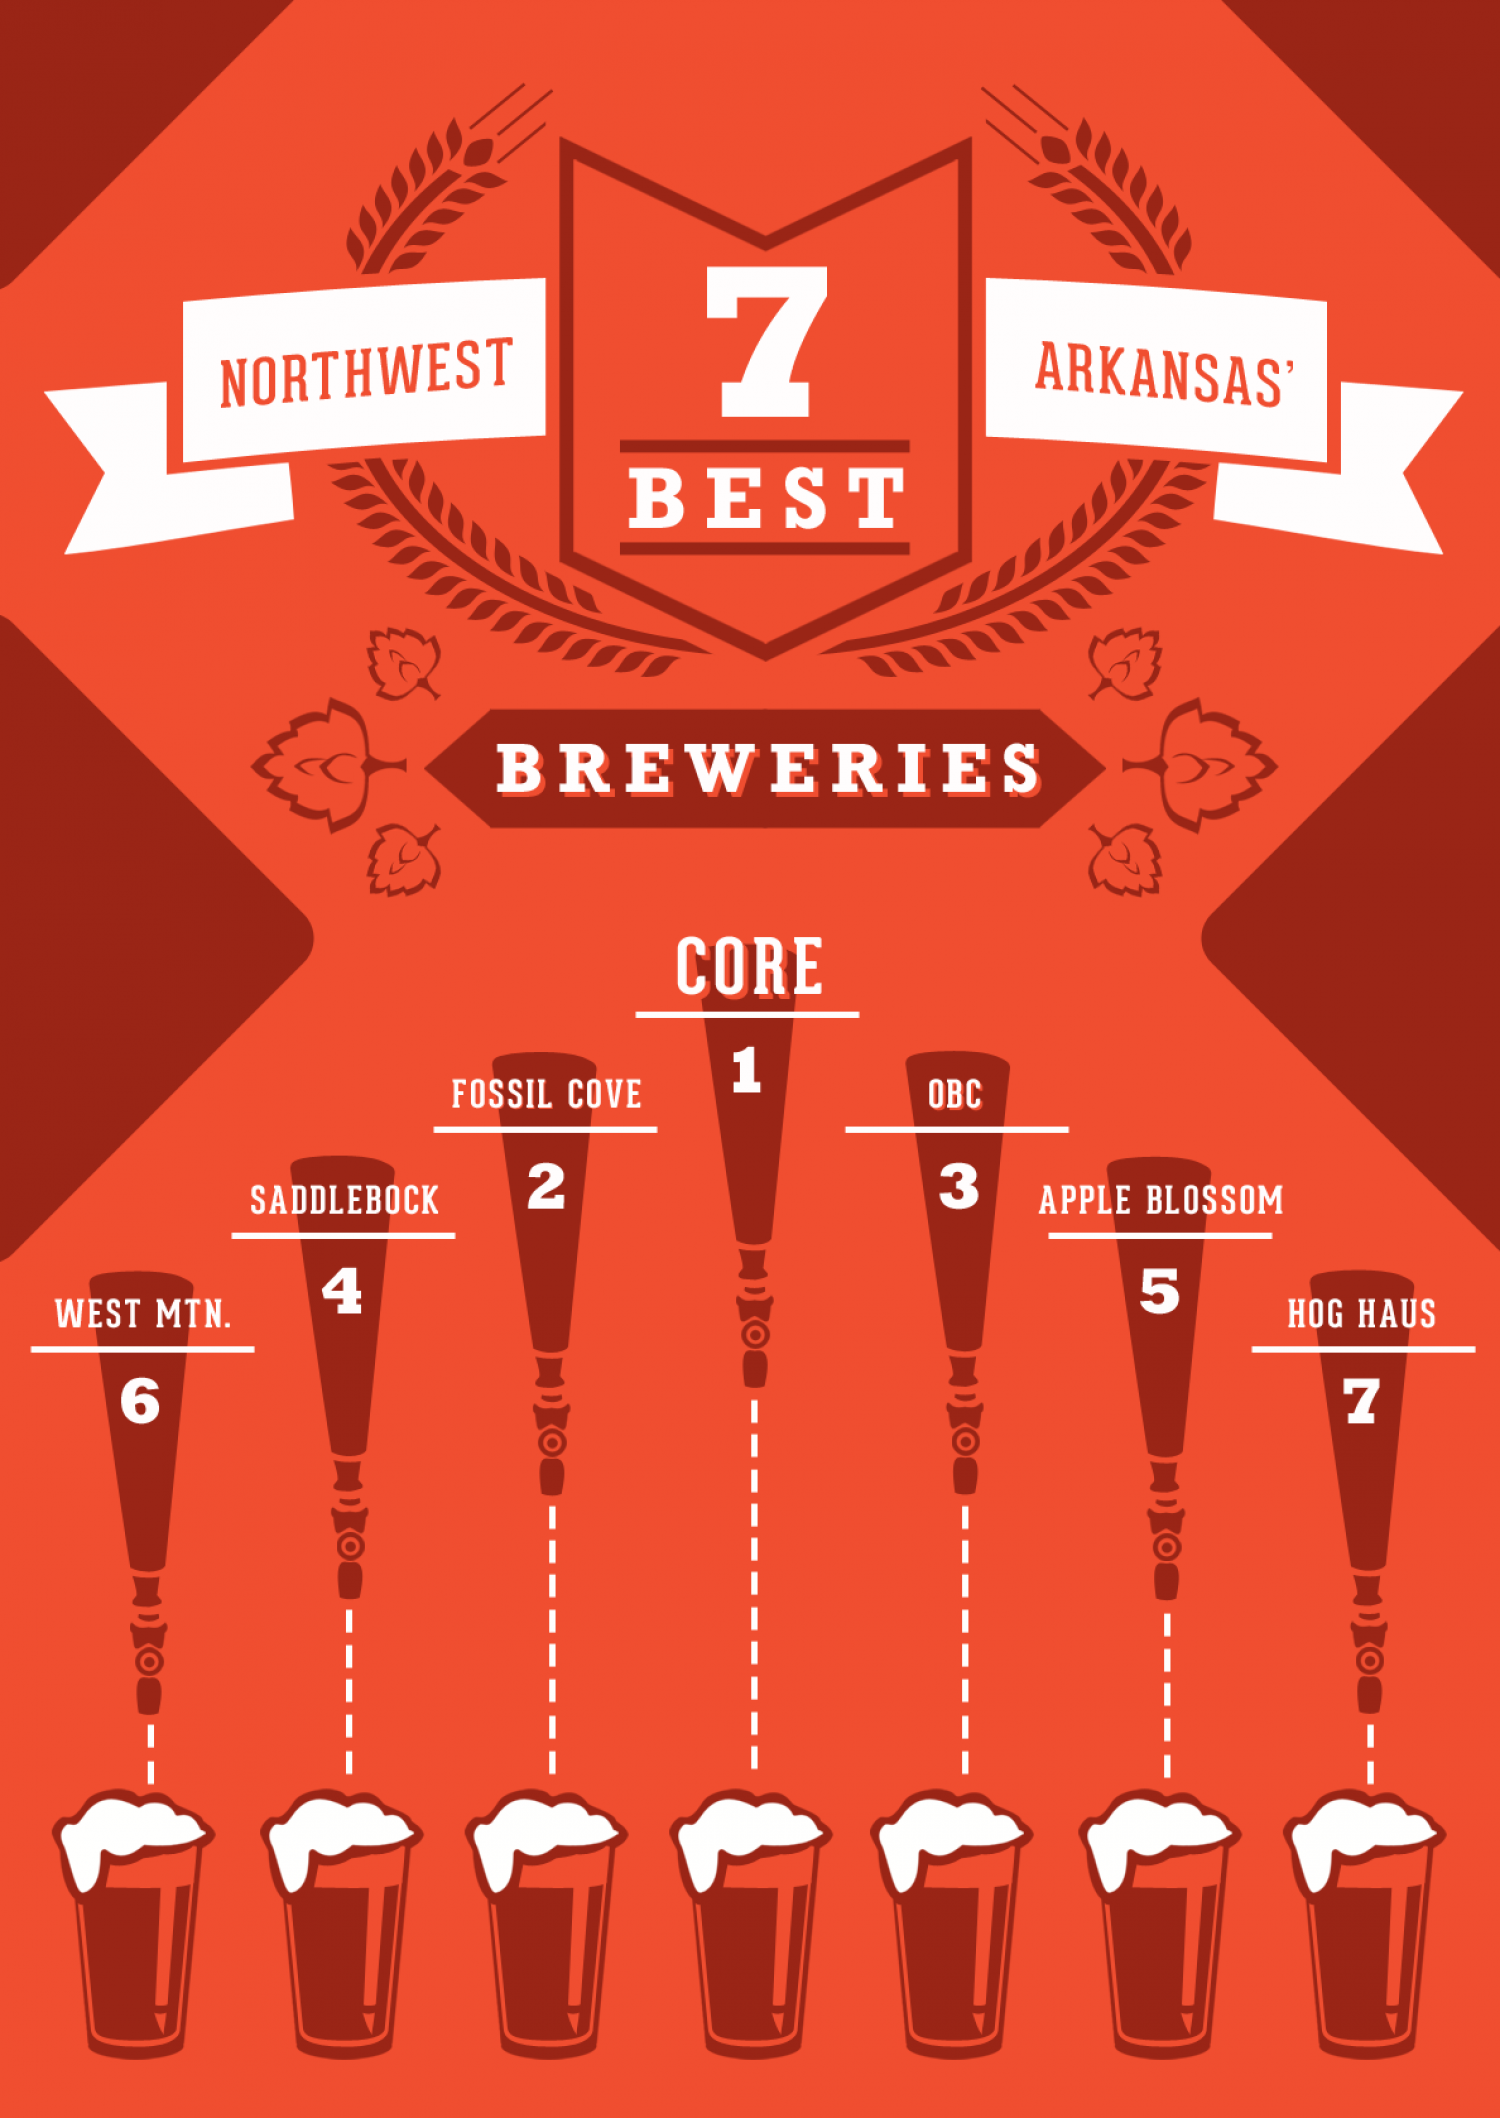 NWA Top 7 Breweries Infographic